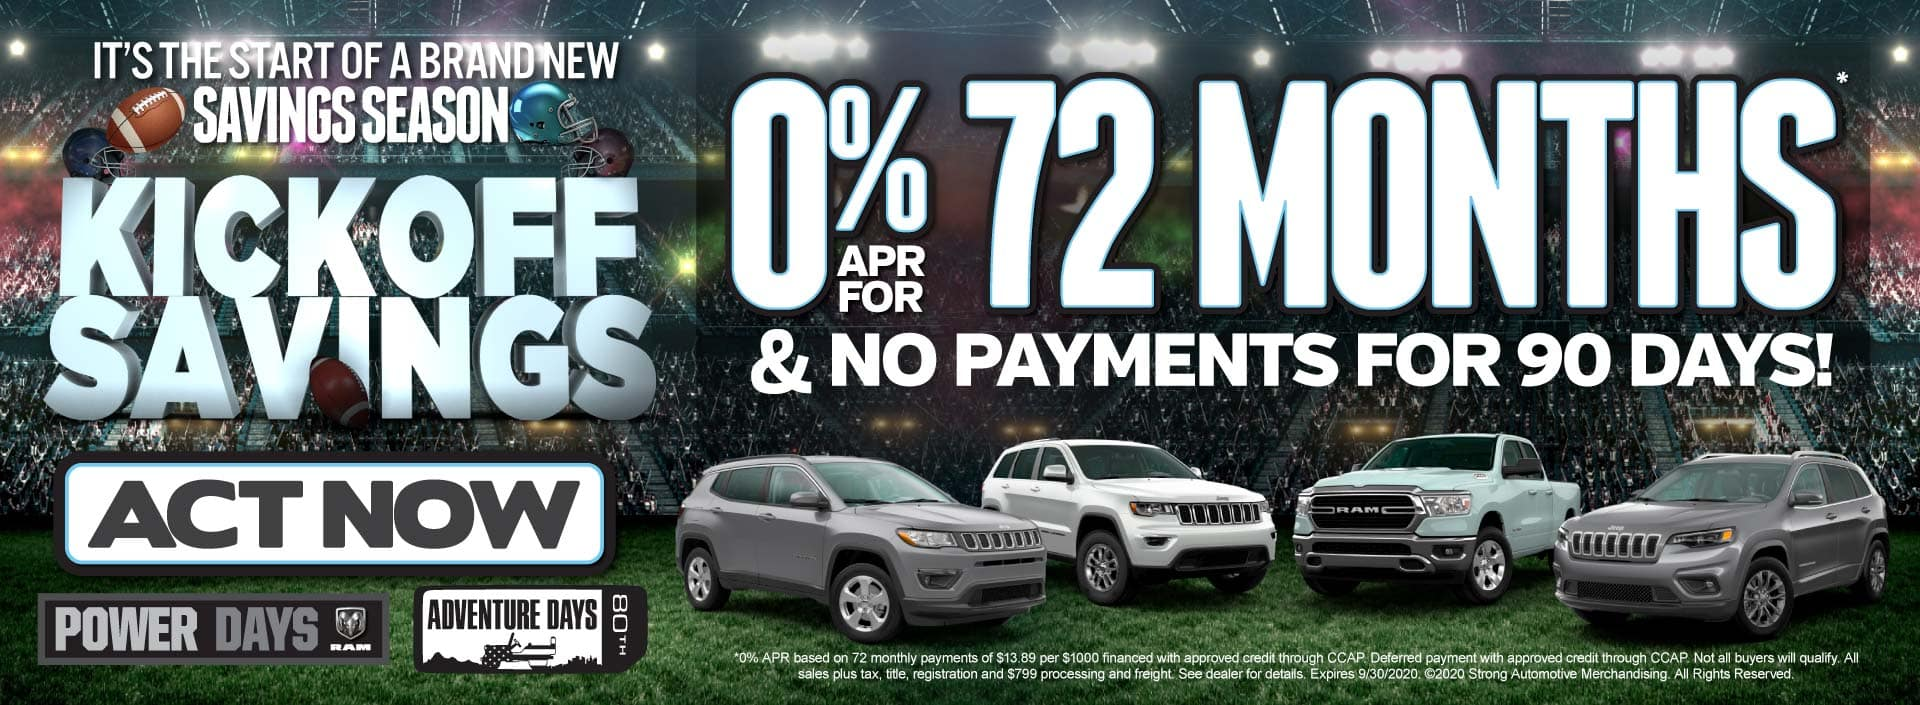 0% APR for 72 Months & No Payments for 90 Days - ACT NOW